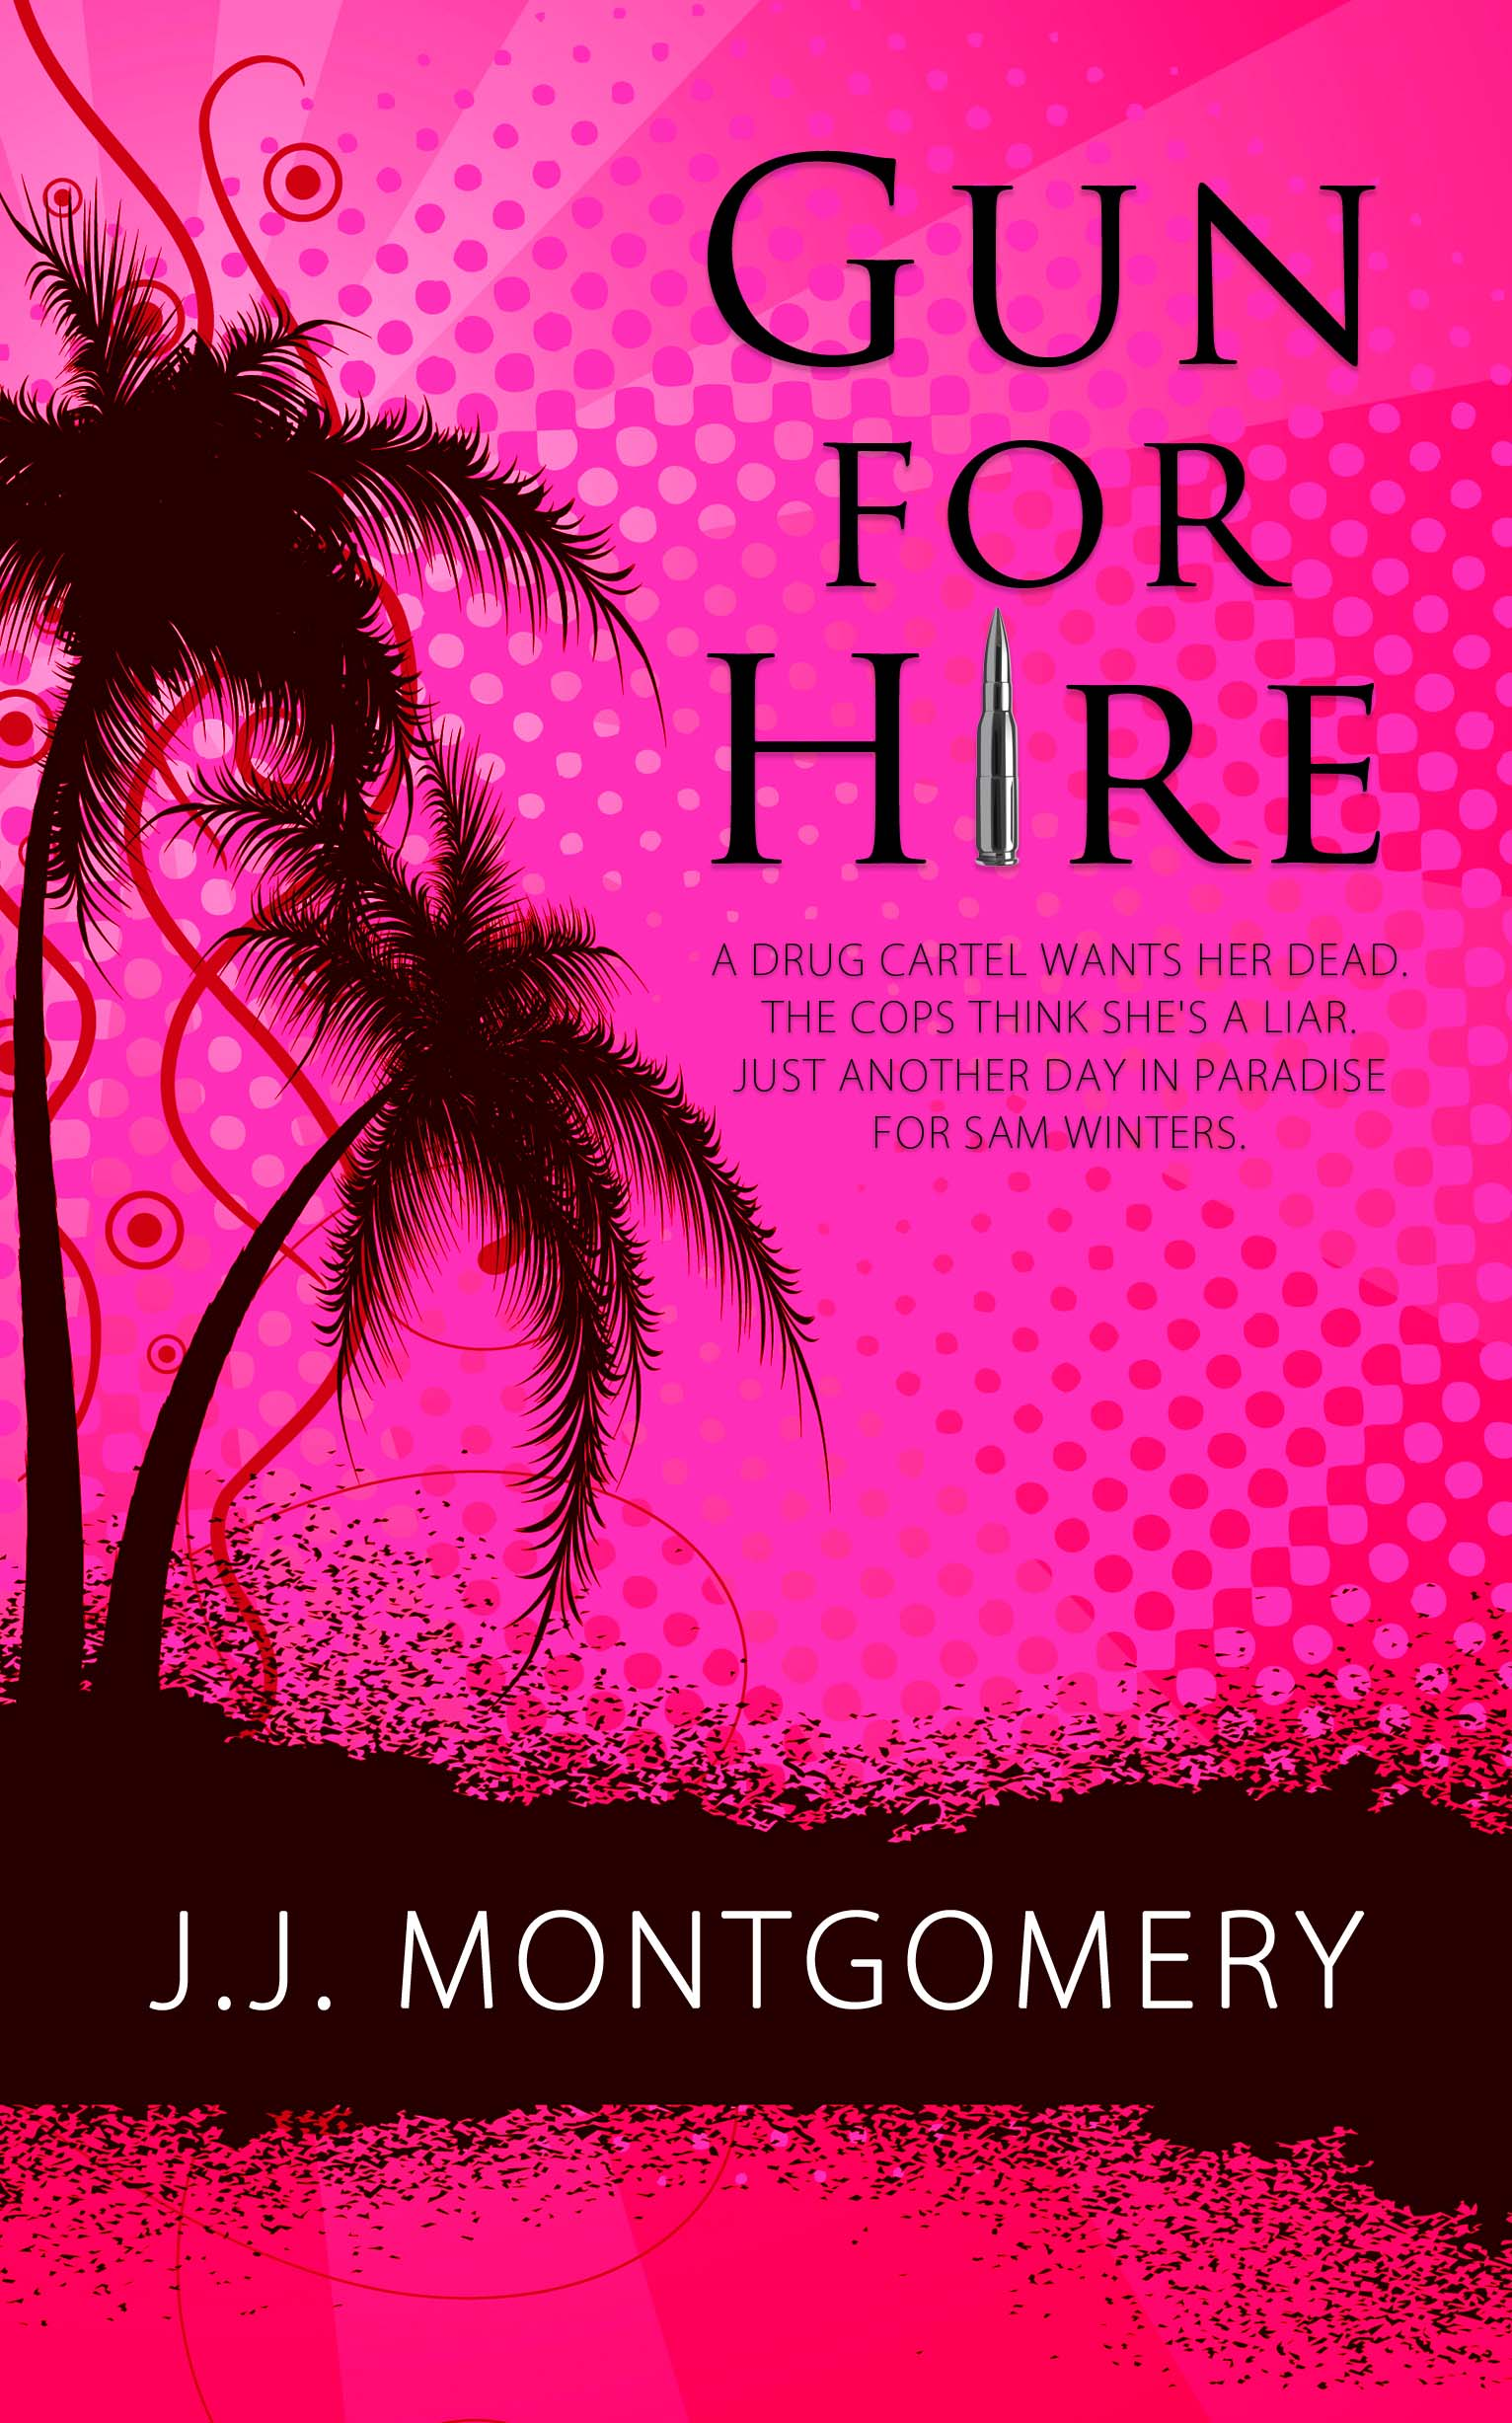 SPOTLIGHT/GIVEAWAY: 'Gun For Hire' by J.J. Montgomery